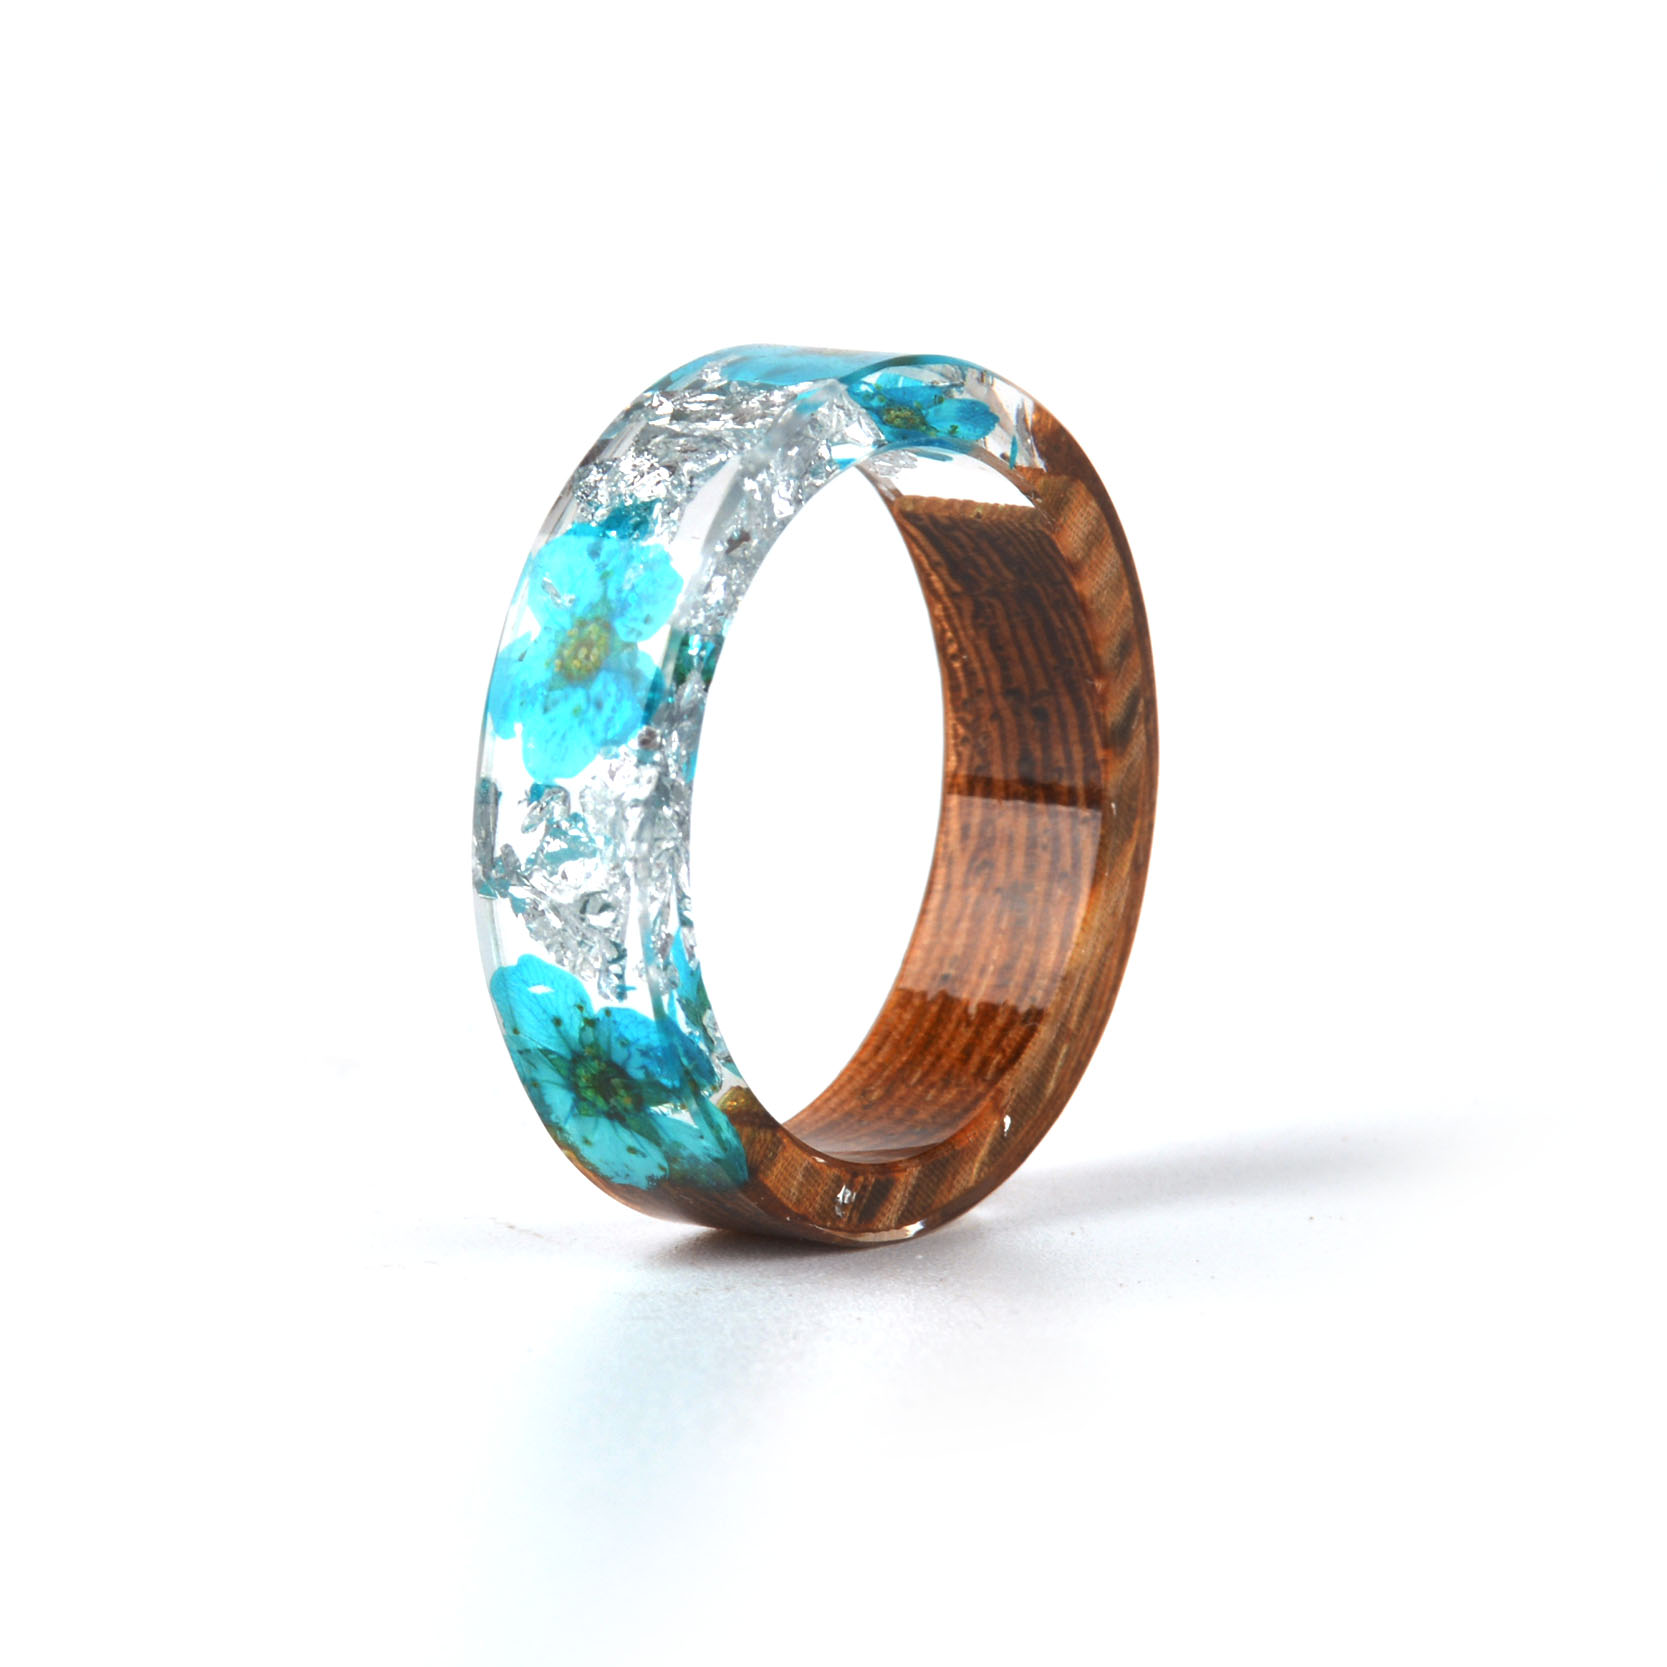 Handmade Wood Resin Ring Many Styles 31